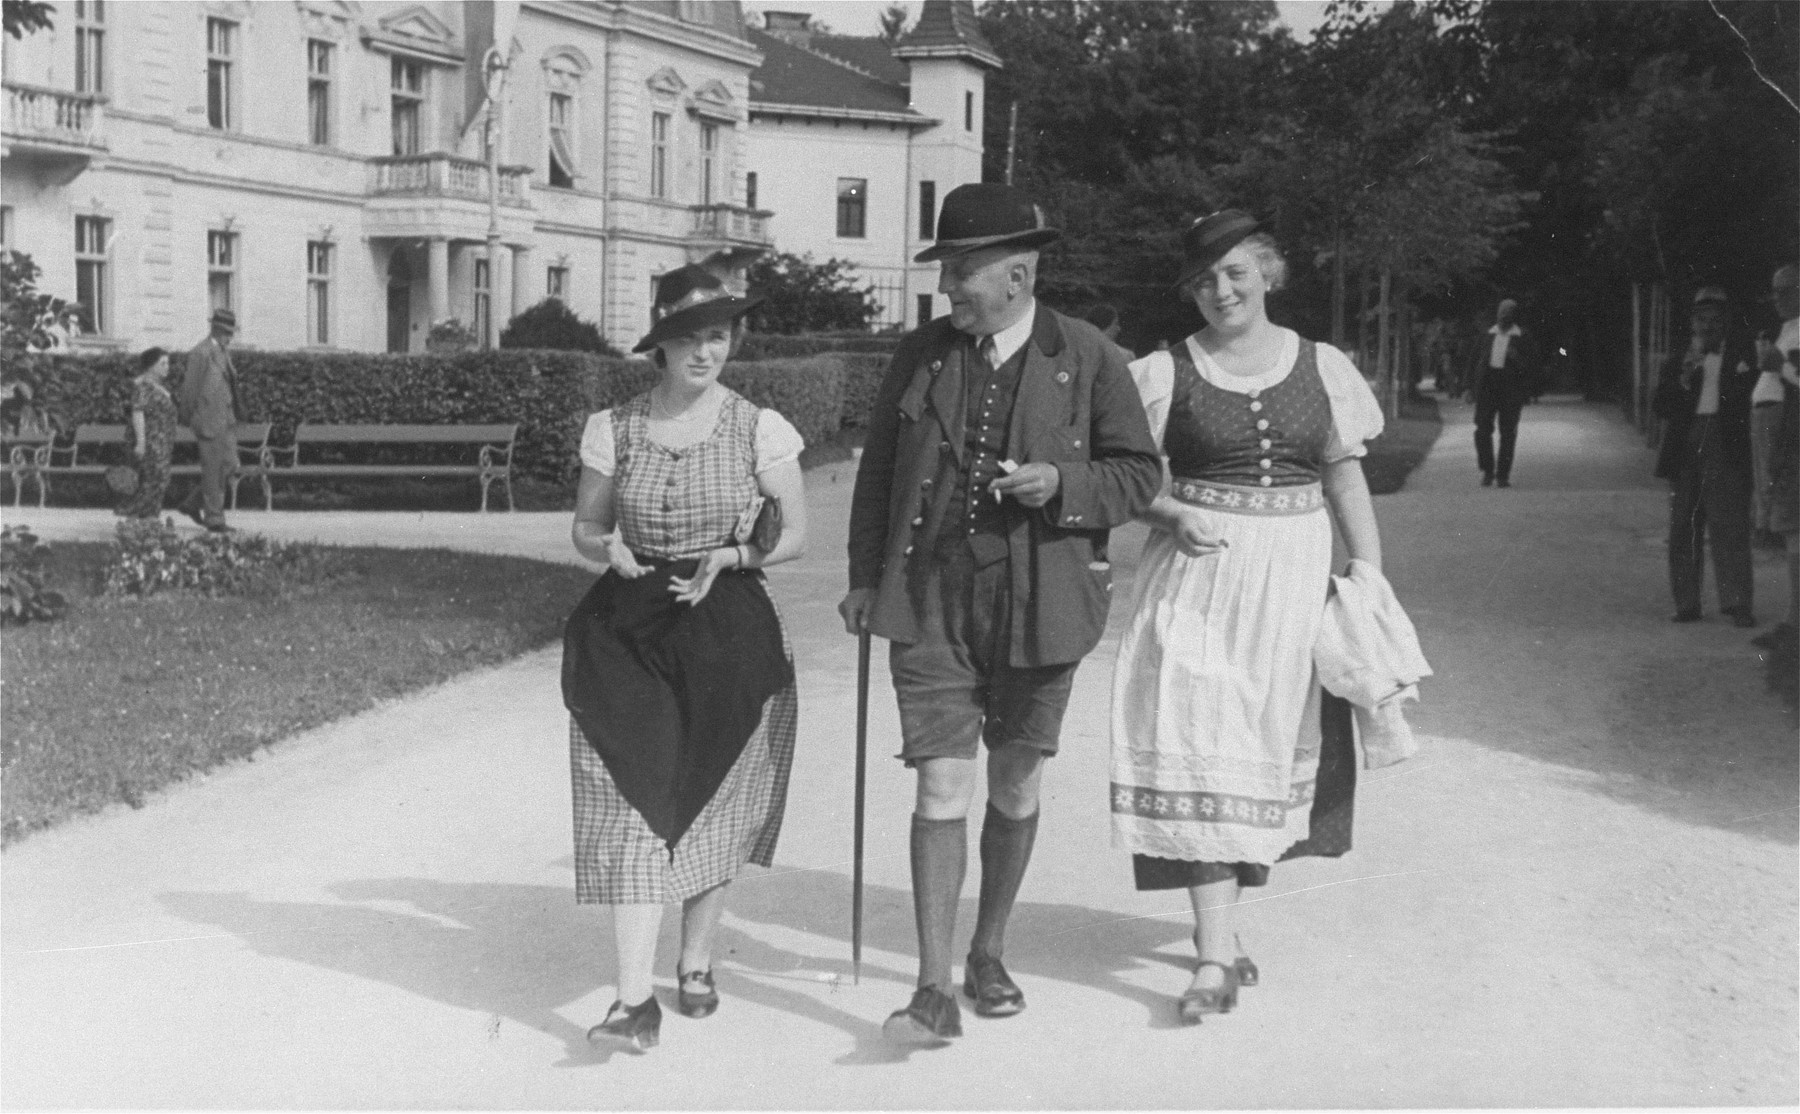 Three Jews dressed in traditional Austrian folk costume walk along a street in the resort town of Bad Hall.  Pictured are Klara Kafka (left) and Grete Woltar (right), the donor's half-sister.